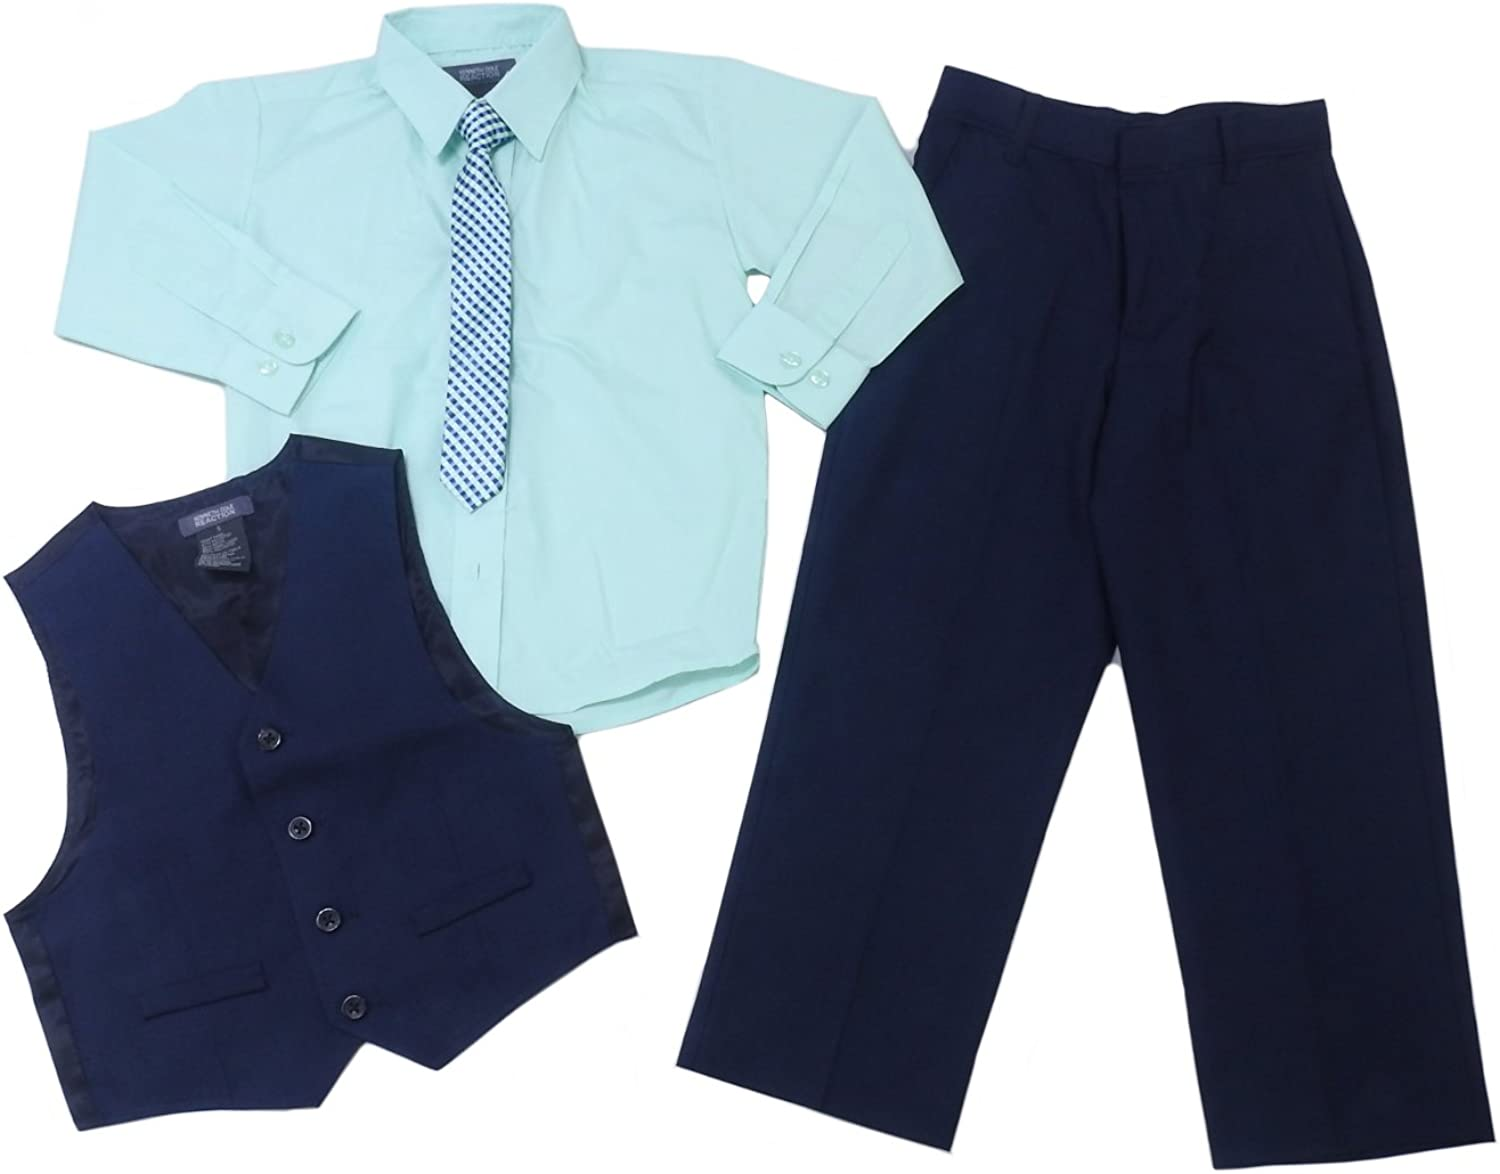 Max 63% OFF Kenneth Cole Reaction Ranking TOP11 Boys 4-Piece Mint Suit Set Navy Pants